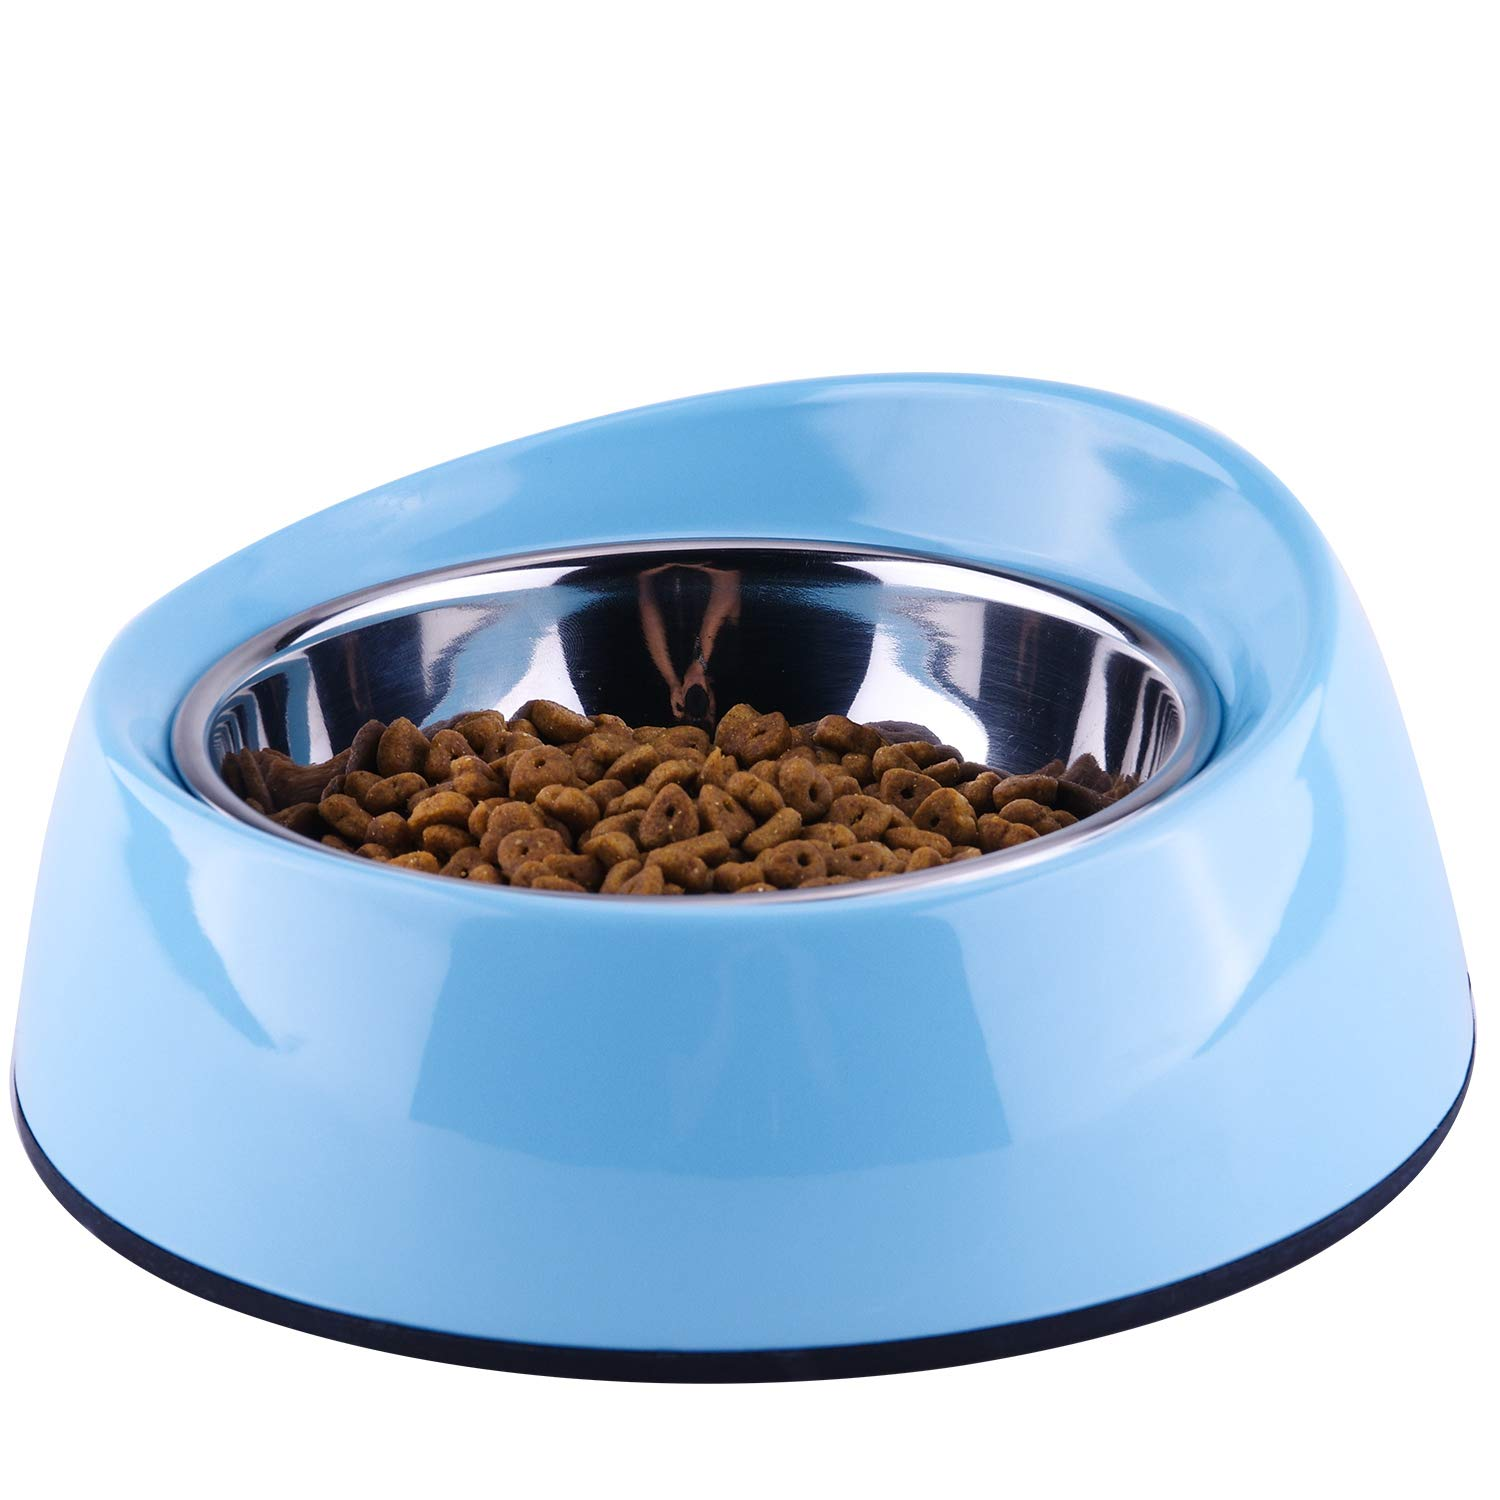 Light bluee 2 Cup Light bluee 2 Cup SuperDesign Removable Stainless Steel Melamine Non-Skid Widthen Mouth Pet Feeding Bowl, for Cats and Brachycephalic Dogs 2 Cup Light bluee